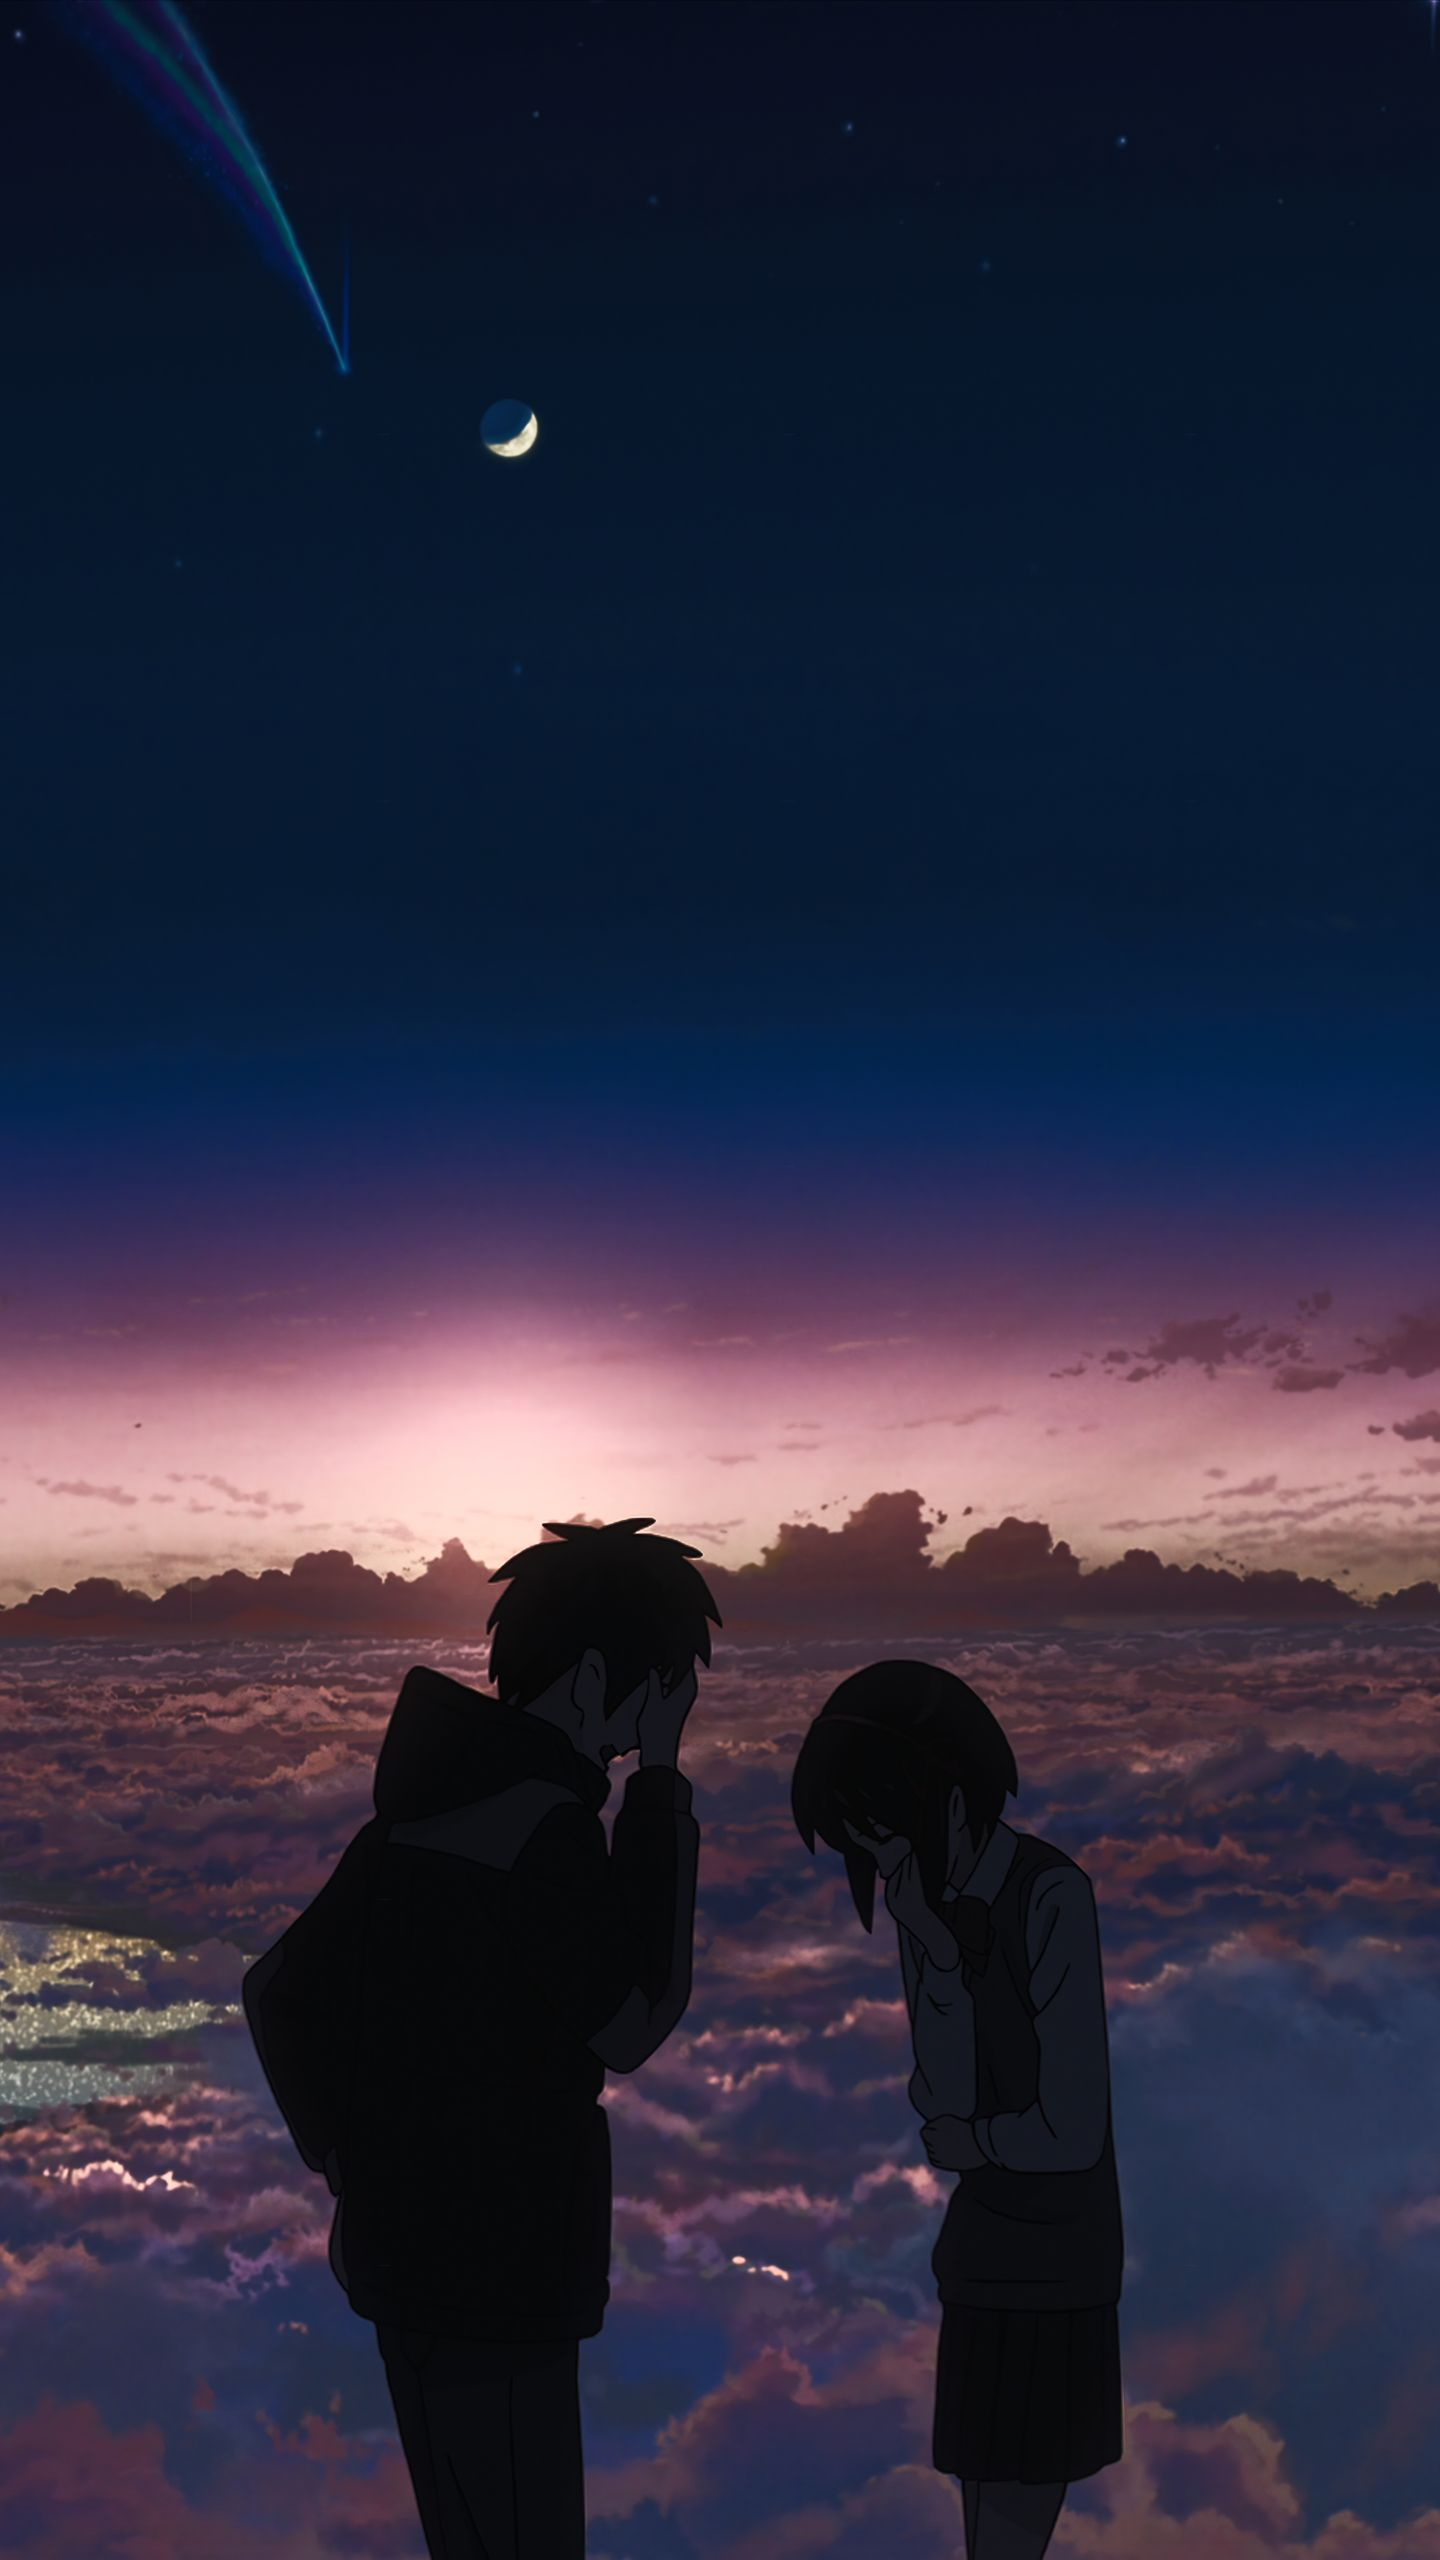 Kimi No Na Wa In 2020 Anime Scenery Anime Backgrounds Wallpapers Your Name Anime